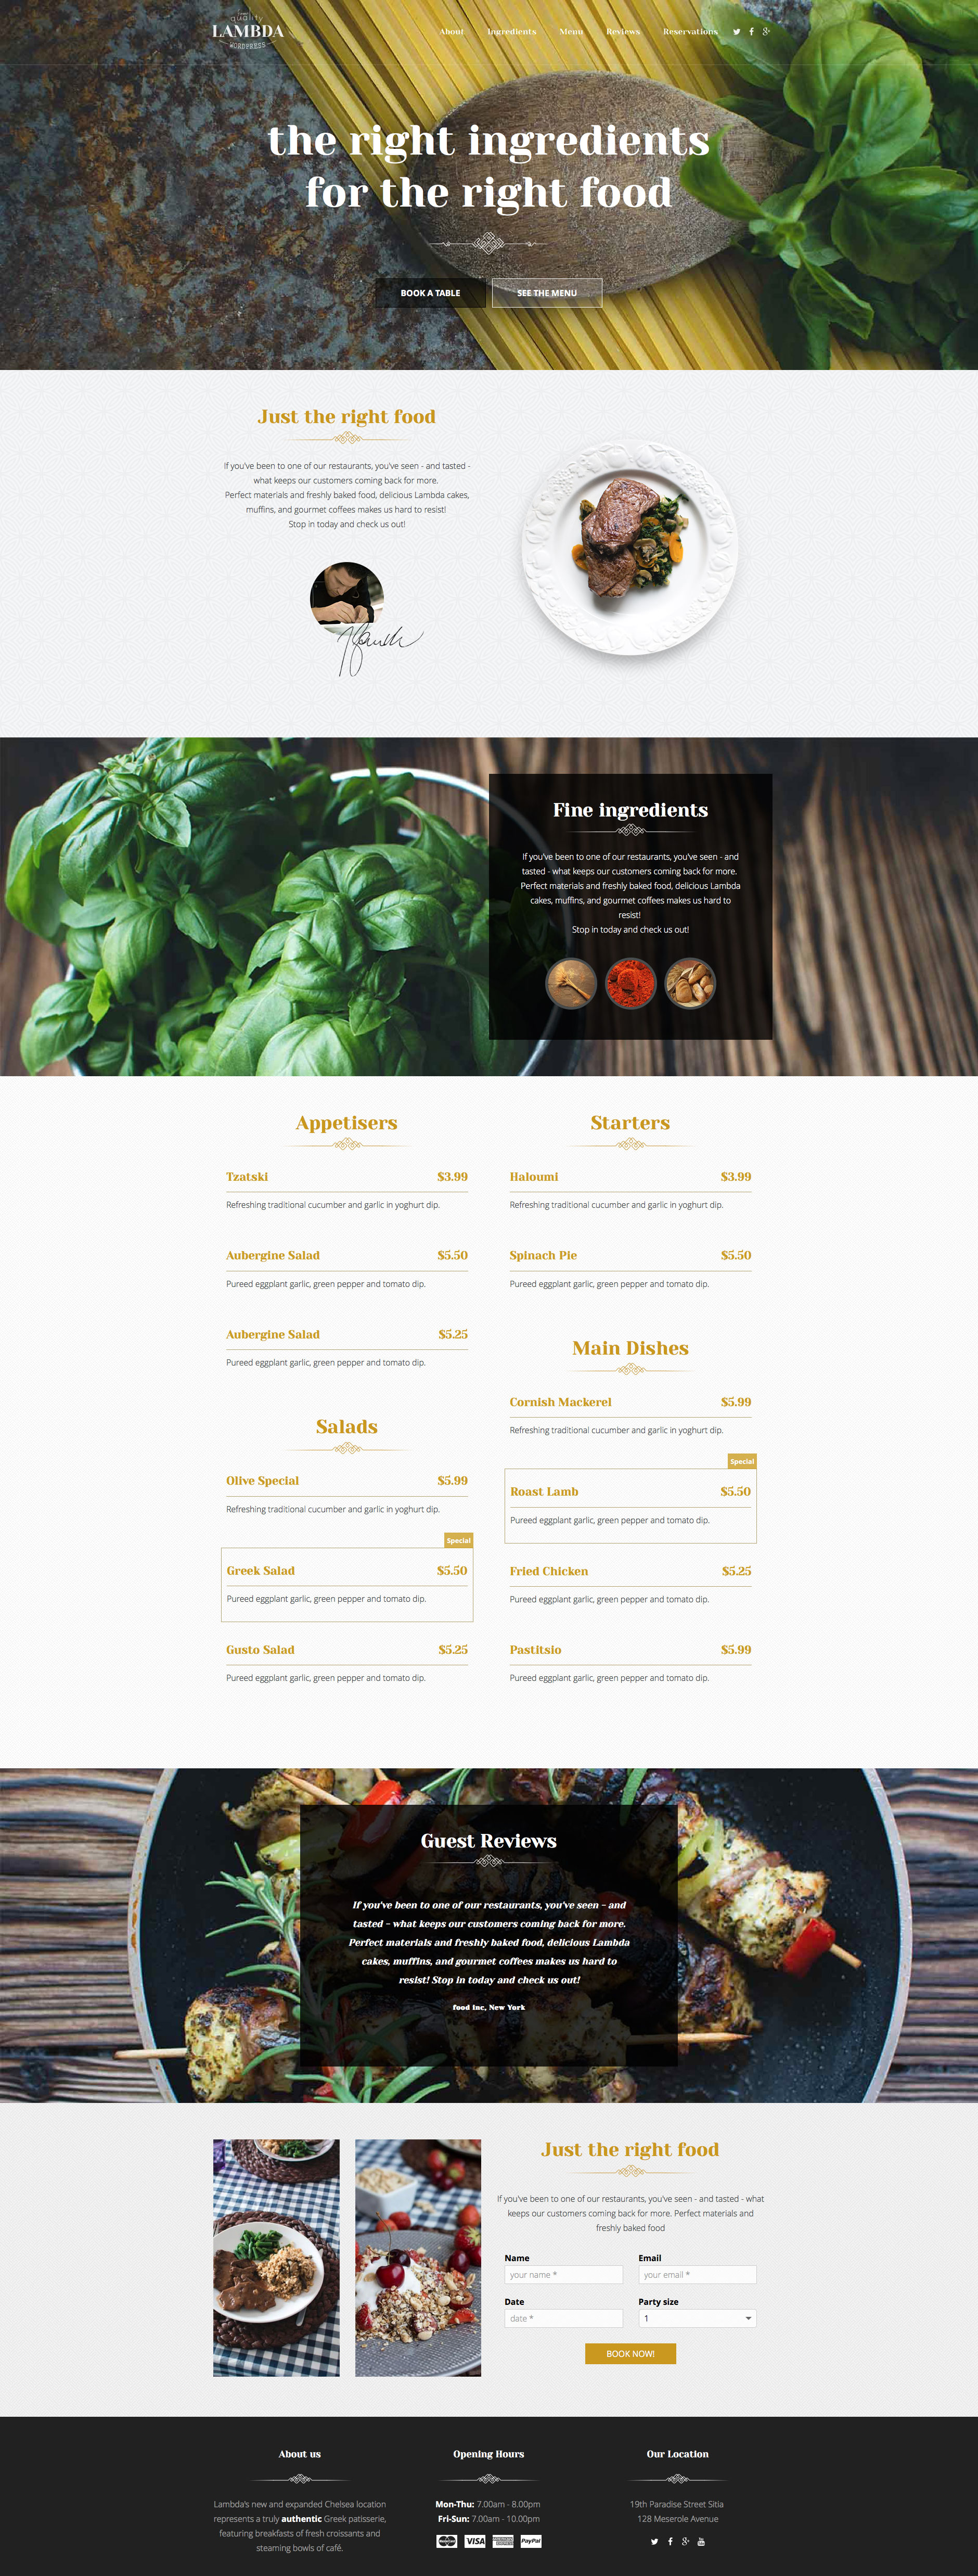 Lambda is a free modern, fully responsive restaurant HTML5 website template built with Base framework. It features LESS, minimal CSS, full 12 column grid support, Retina support. This template is the perfect choice for restaurant websites.